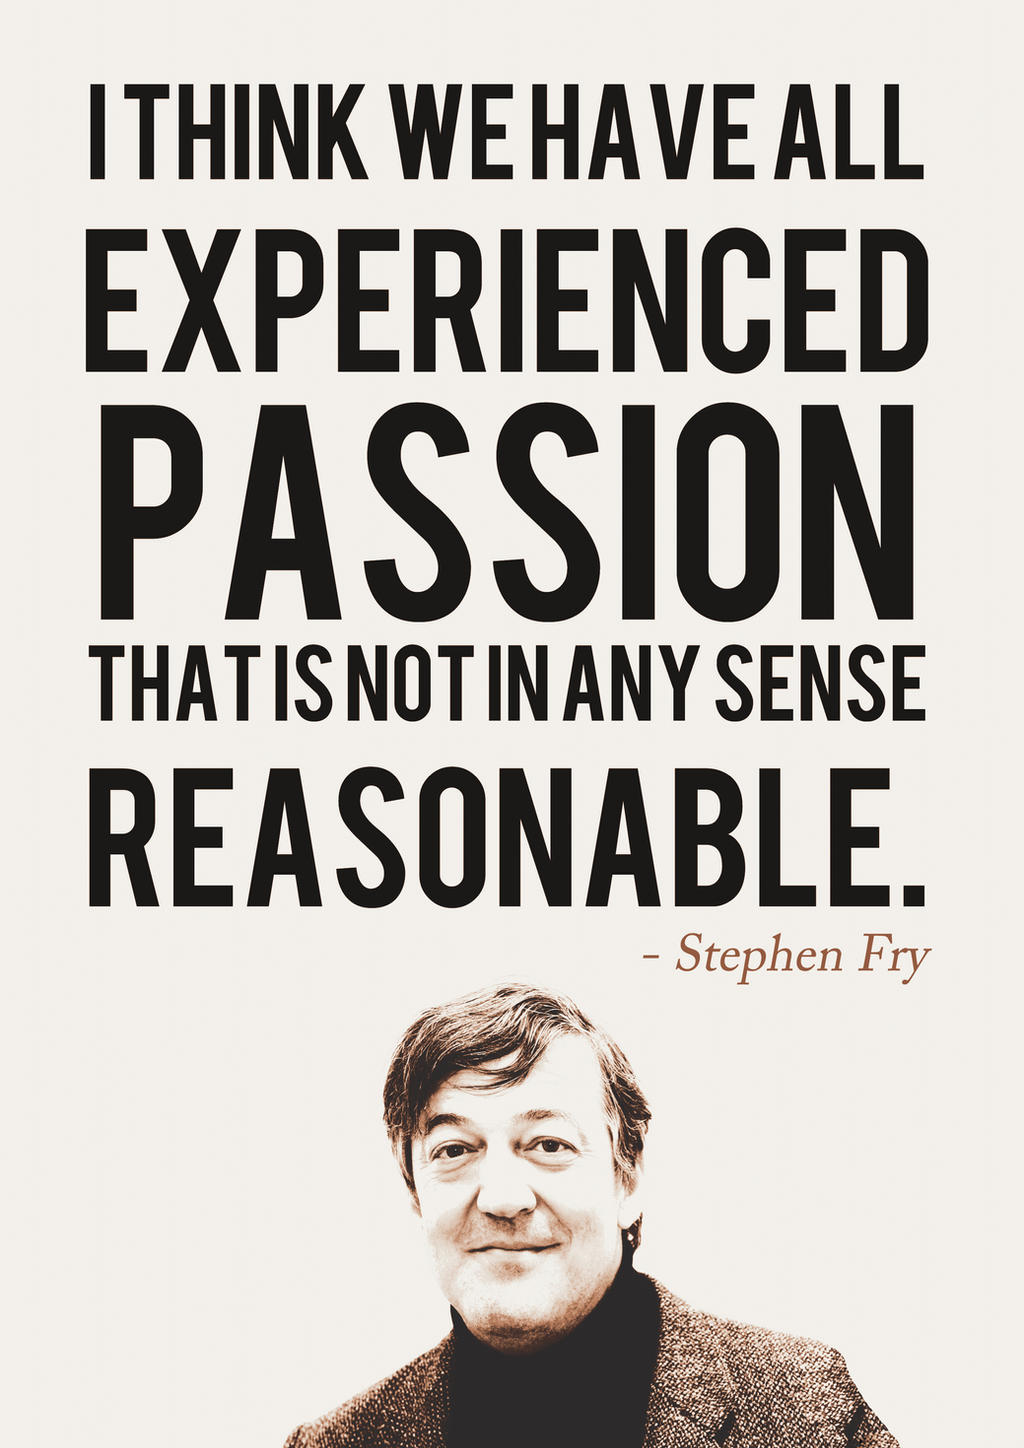 Offensive Quotes Stephen Fry Quote Posterneutronflow On Deviantart